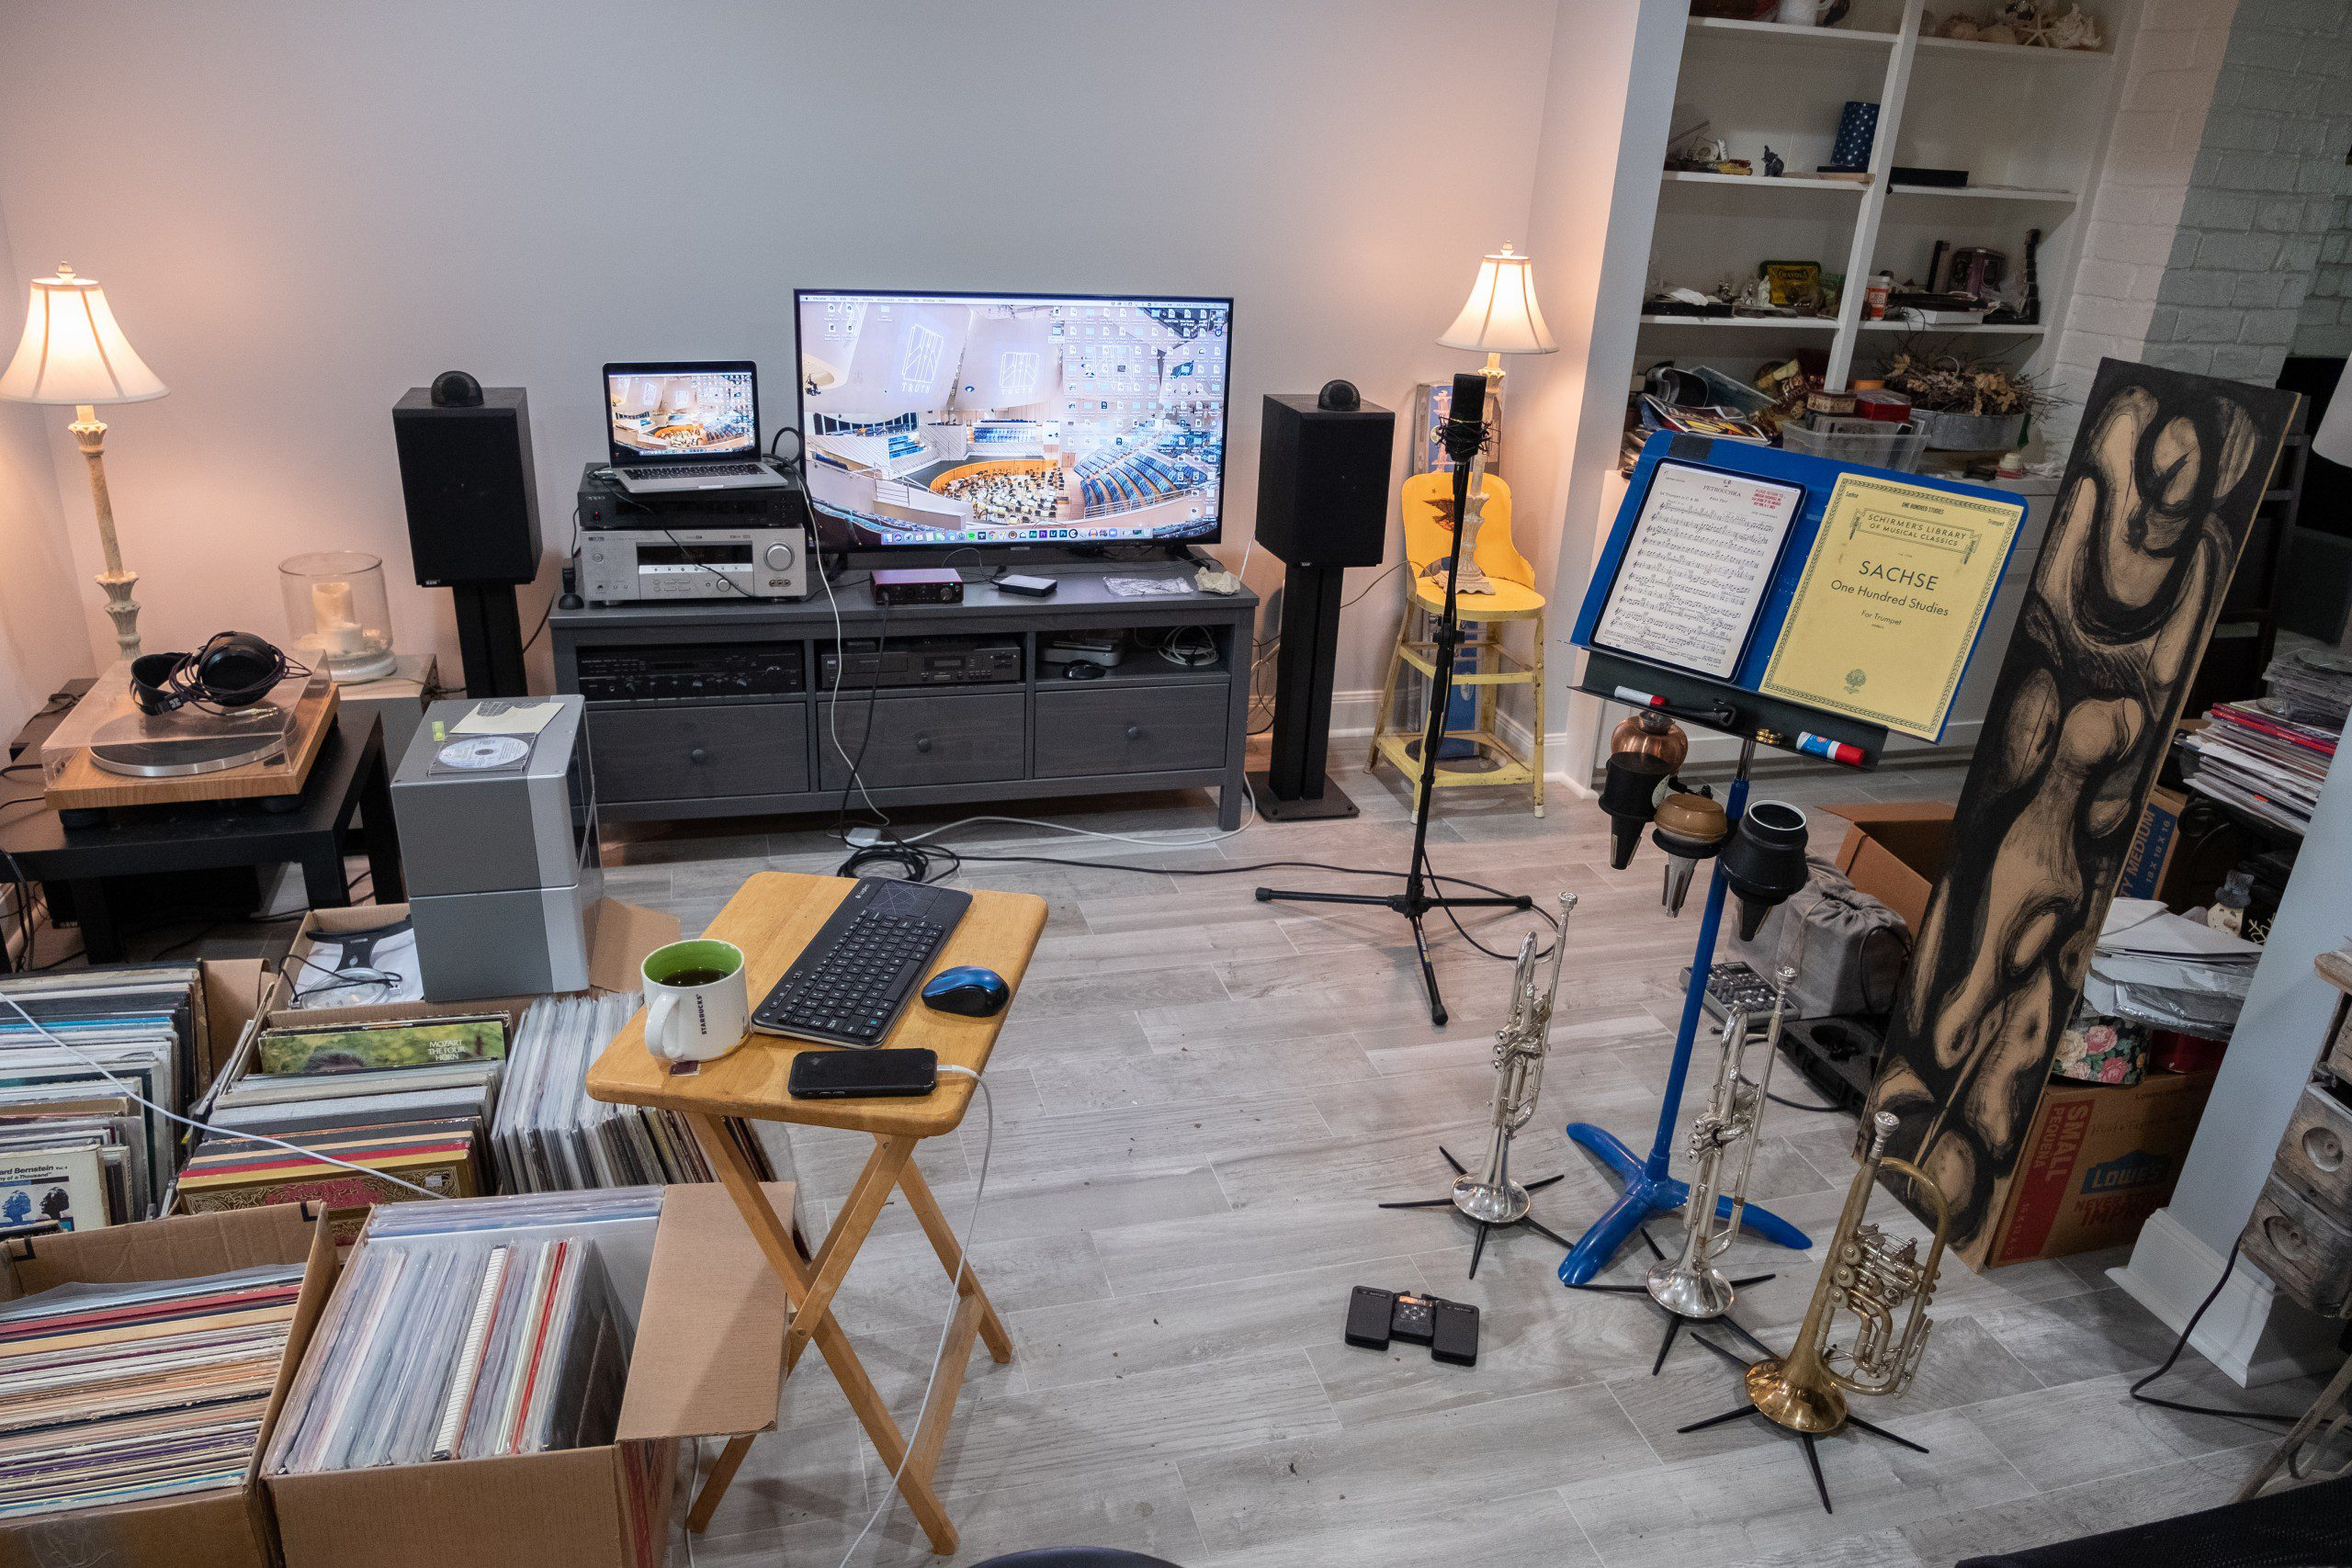 St. Olaf student Steven Garcia's virtual learning setup for trumpet lessons and classes.